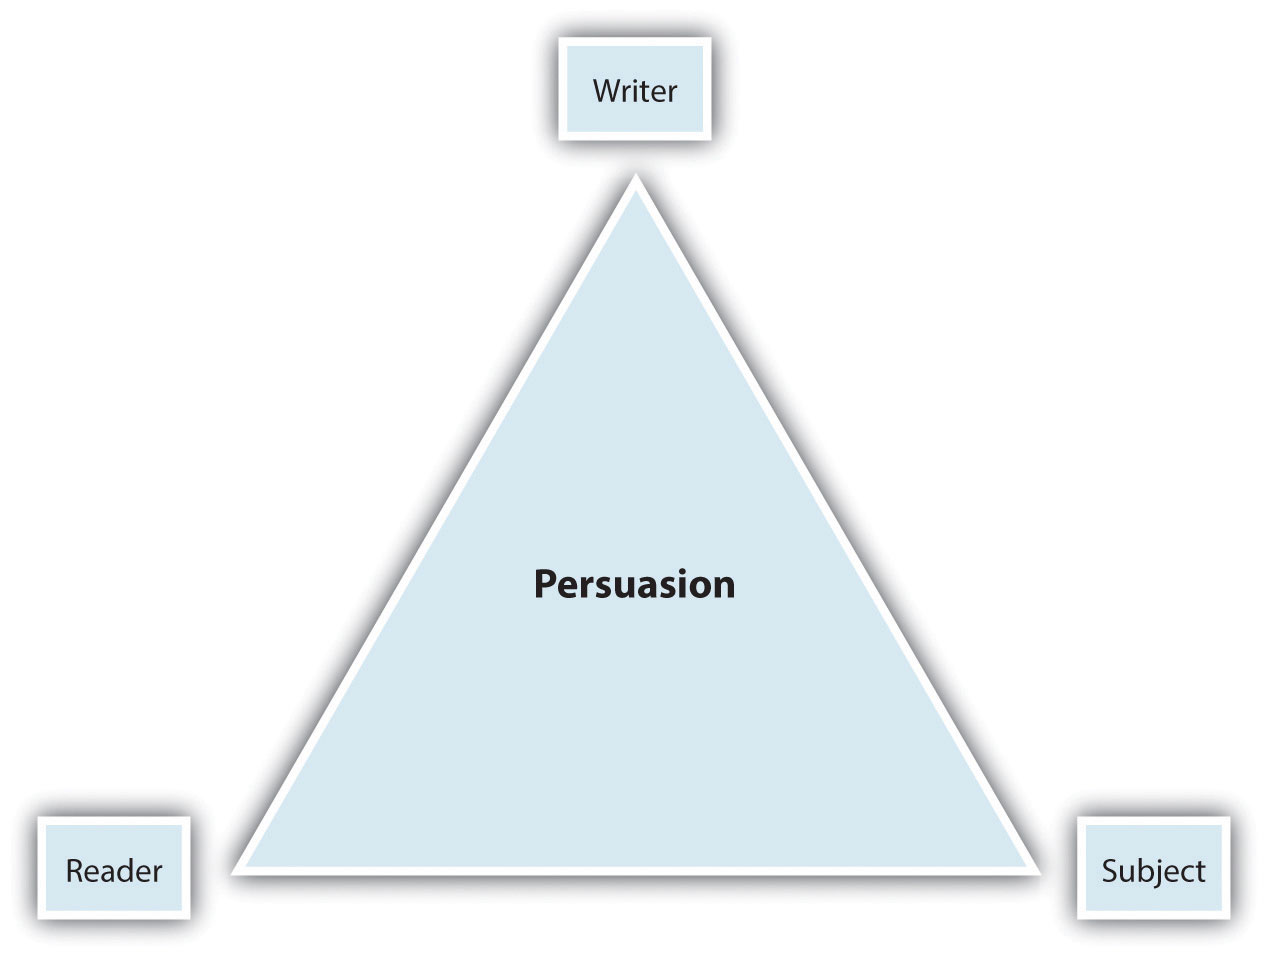 the elements of a persuasive essay Parts of a persuasive essay a clear step-by step process of a persuasive essay study play introduction 1hook- gets the readers attention 2 intro to the topic- addresses issue/problem, two sides, topic and arguments 3 thesis- one sentence statement that addresses the topic and your position.